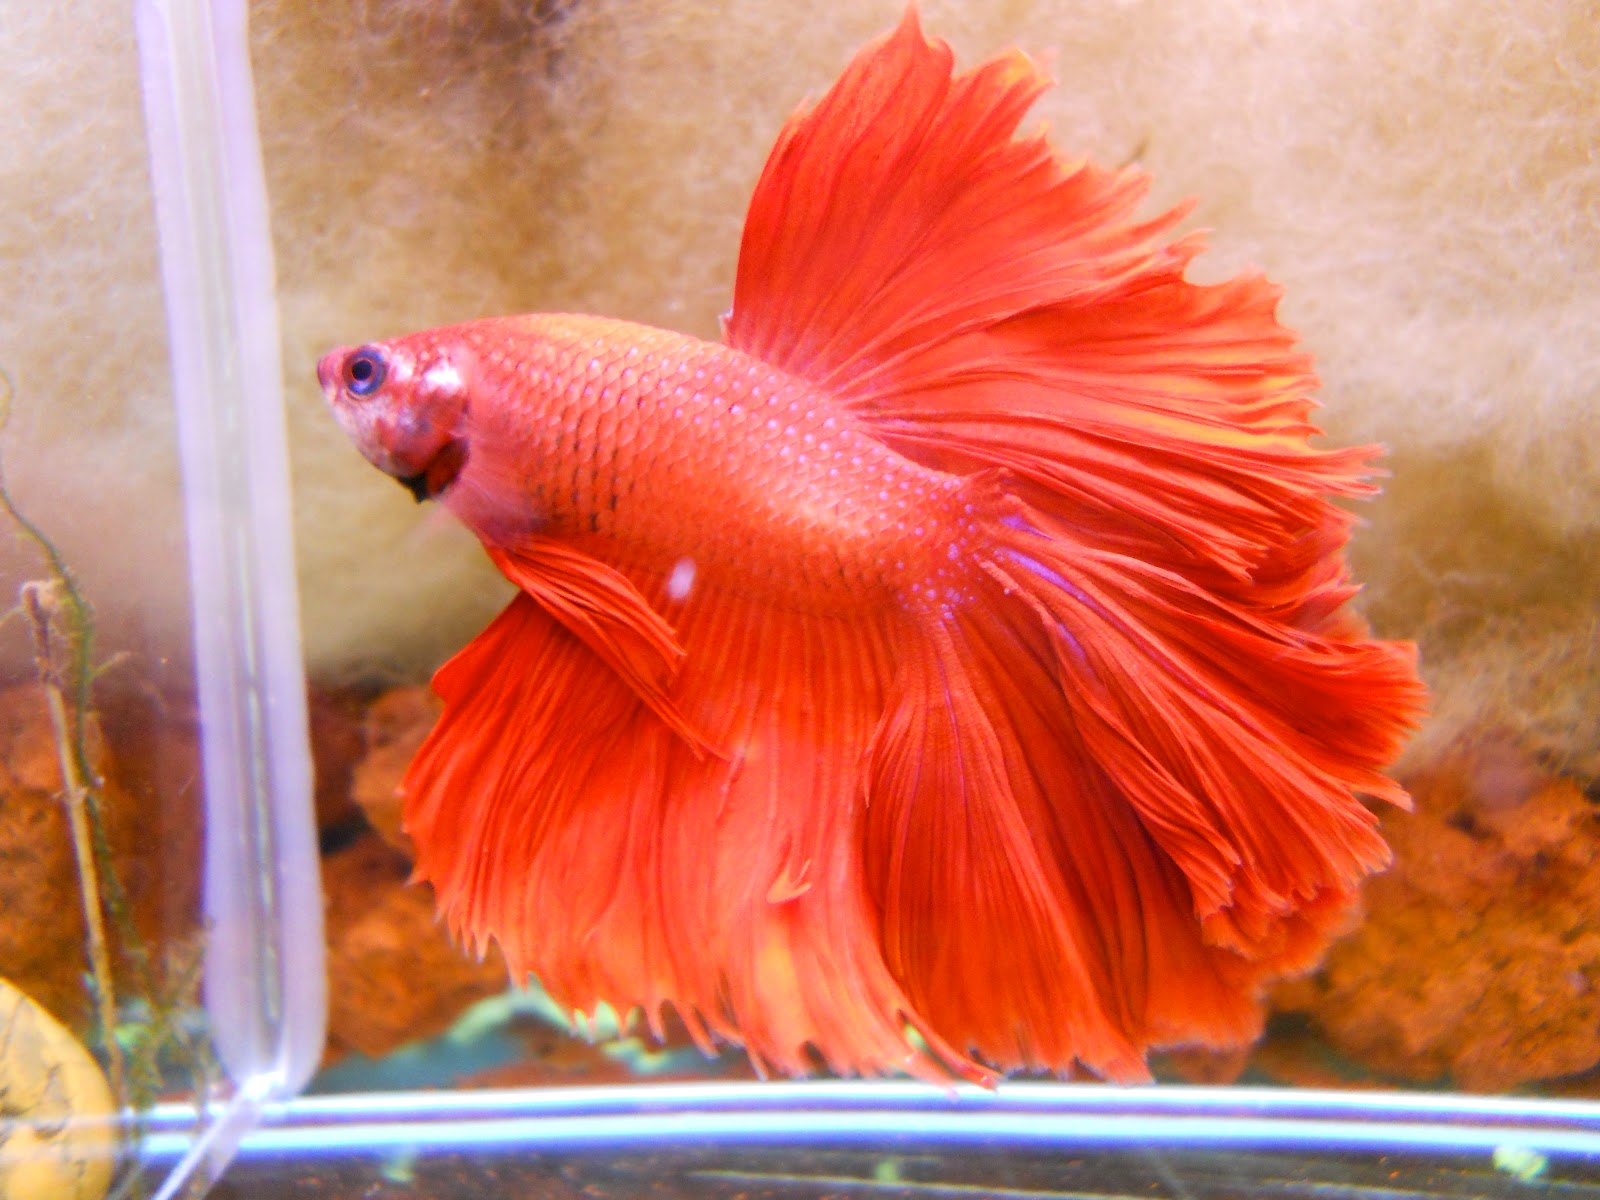 Betta Fish Tail Types and Patterns | Betta Fish Questions